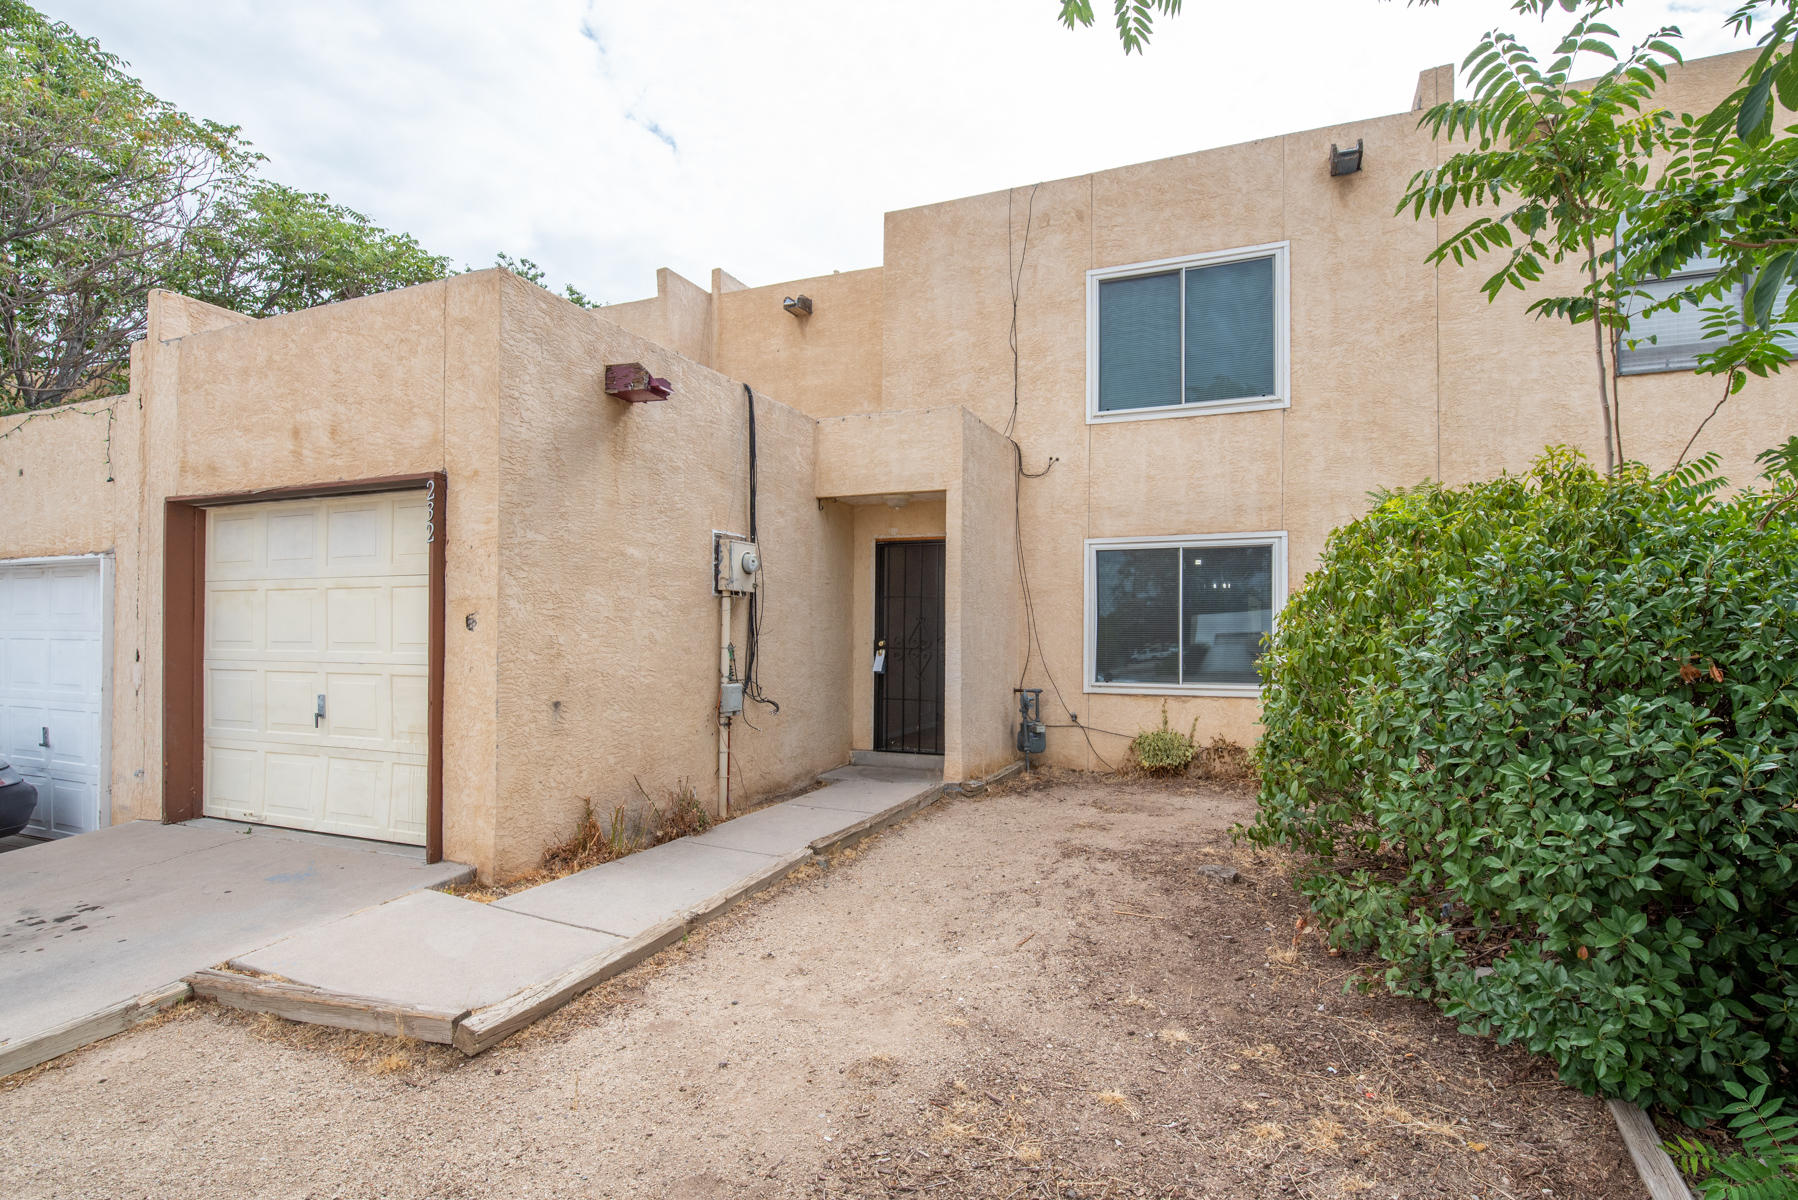 Move in ready Townhome. Freshly painted and new carpet Full of natural light.  3 bedroom , 2 bath, Living and separate dining rooms. Kitchen offers stainless appliances, good sized pantry, ample cabinets and counters. Fenced backyard for privacy. 1 car garage. No HOA.